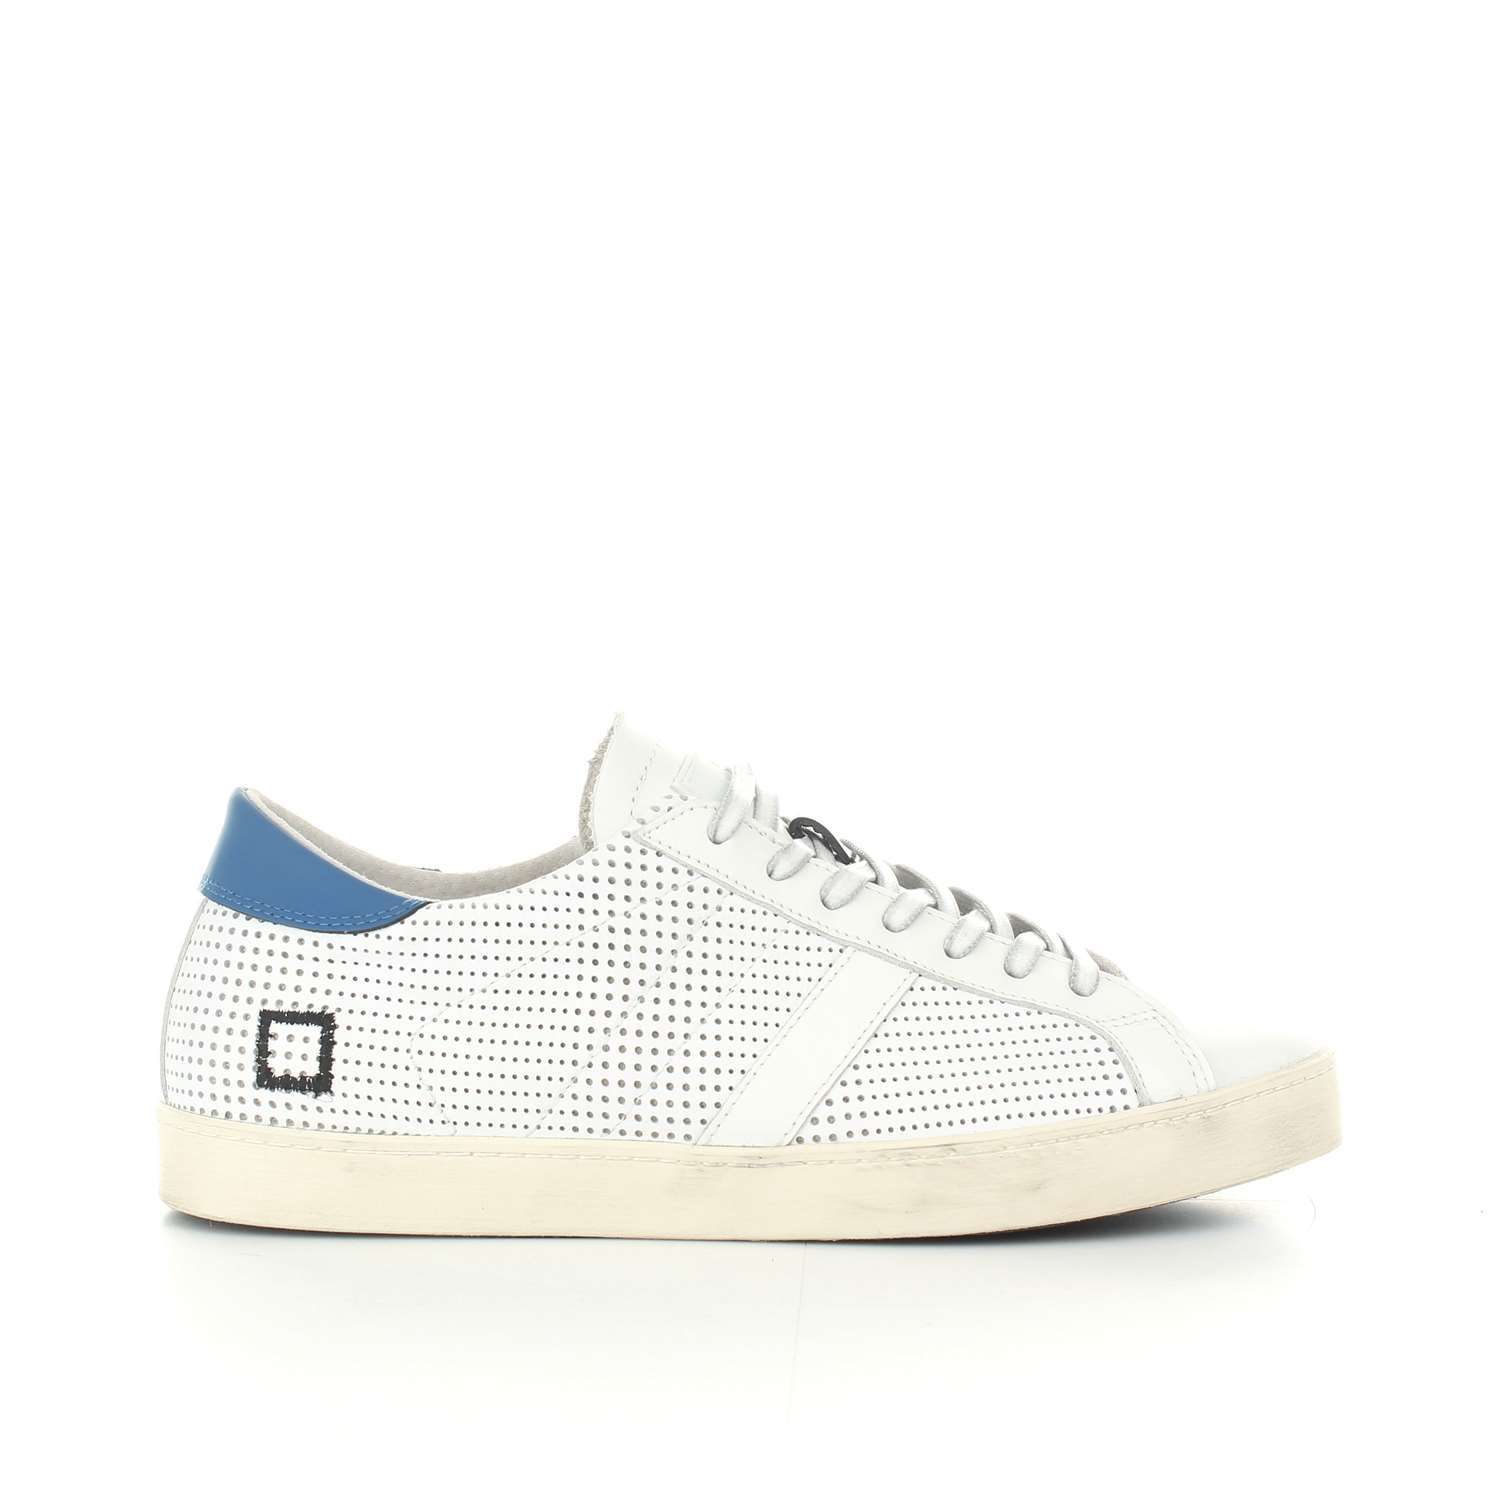 Sneaker D.A.T.E. Hill Low Pop en Piel Blanca Perforada 43 EU|Blanco